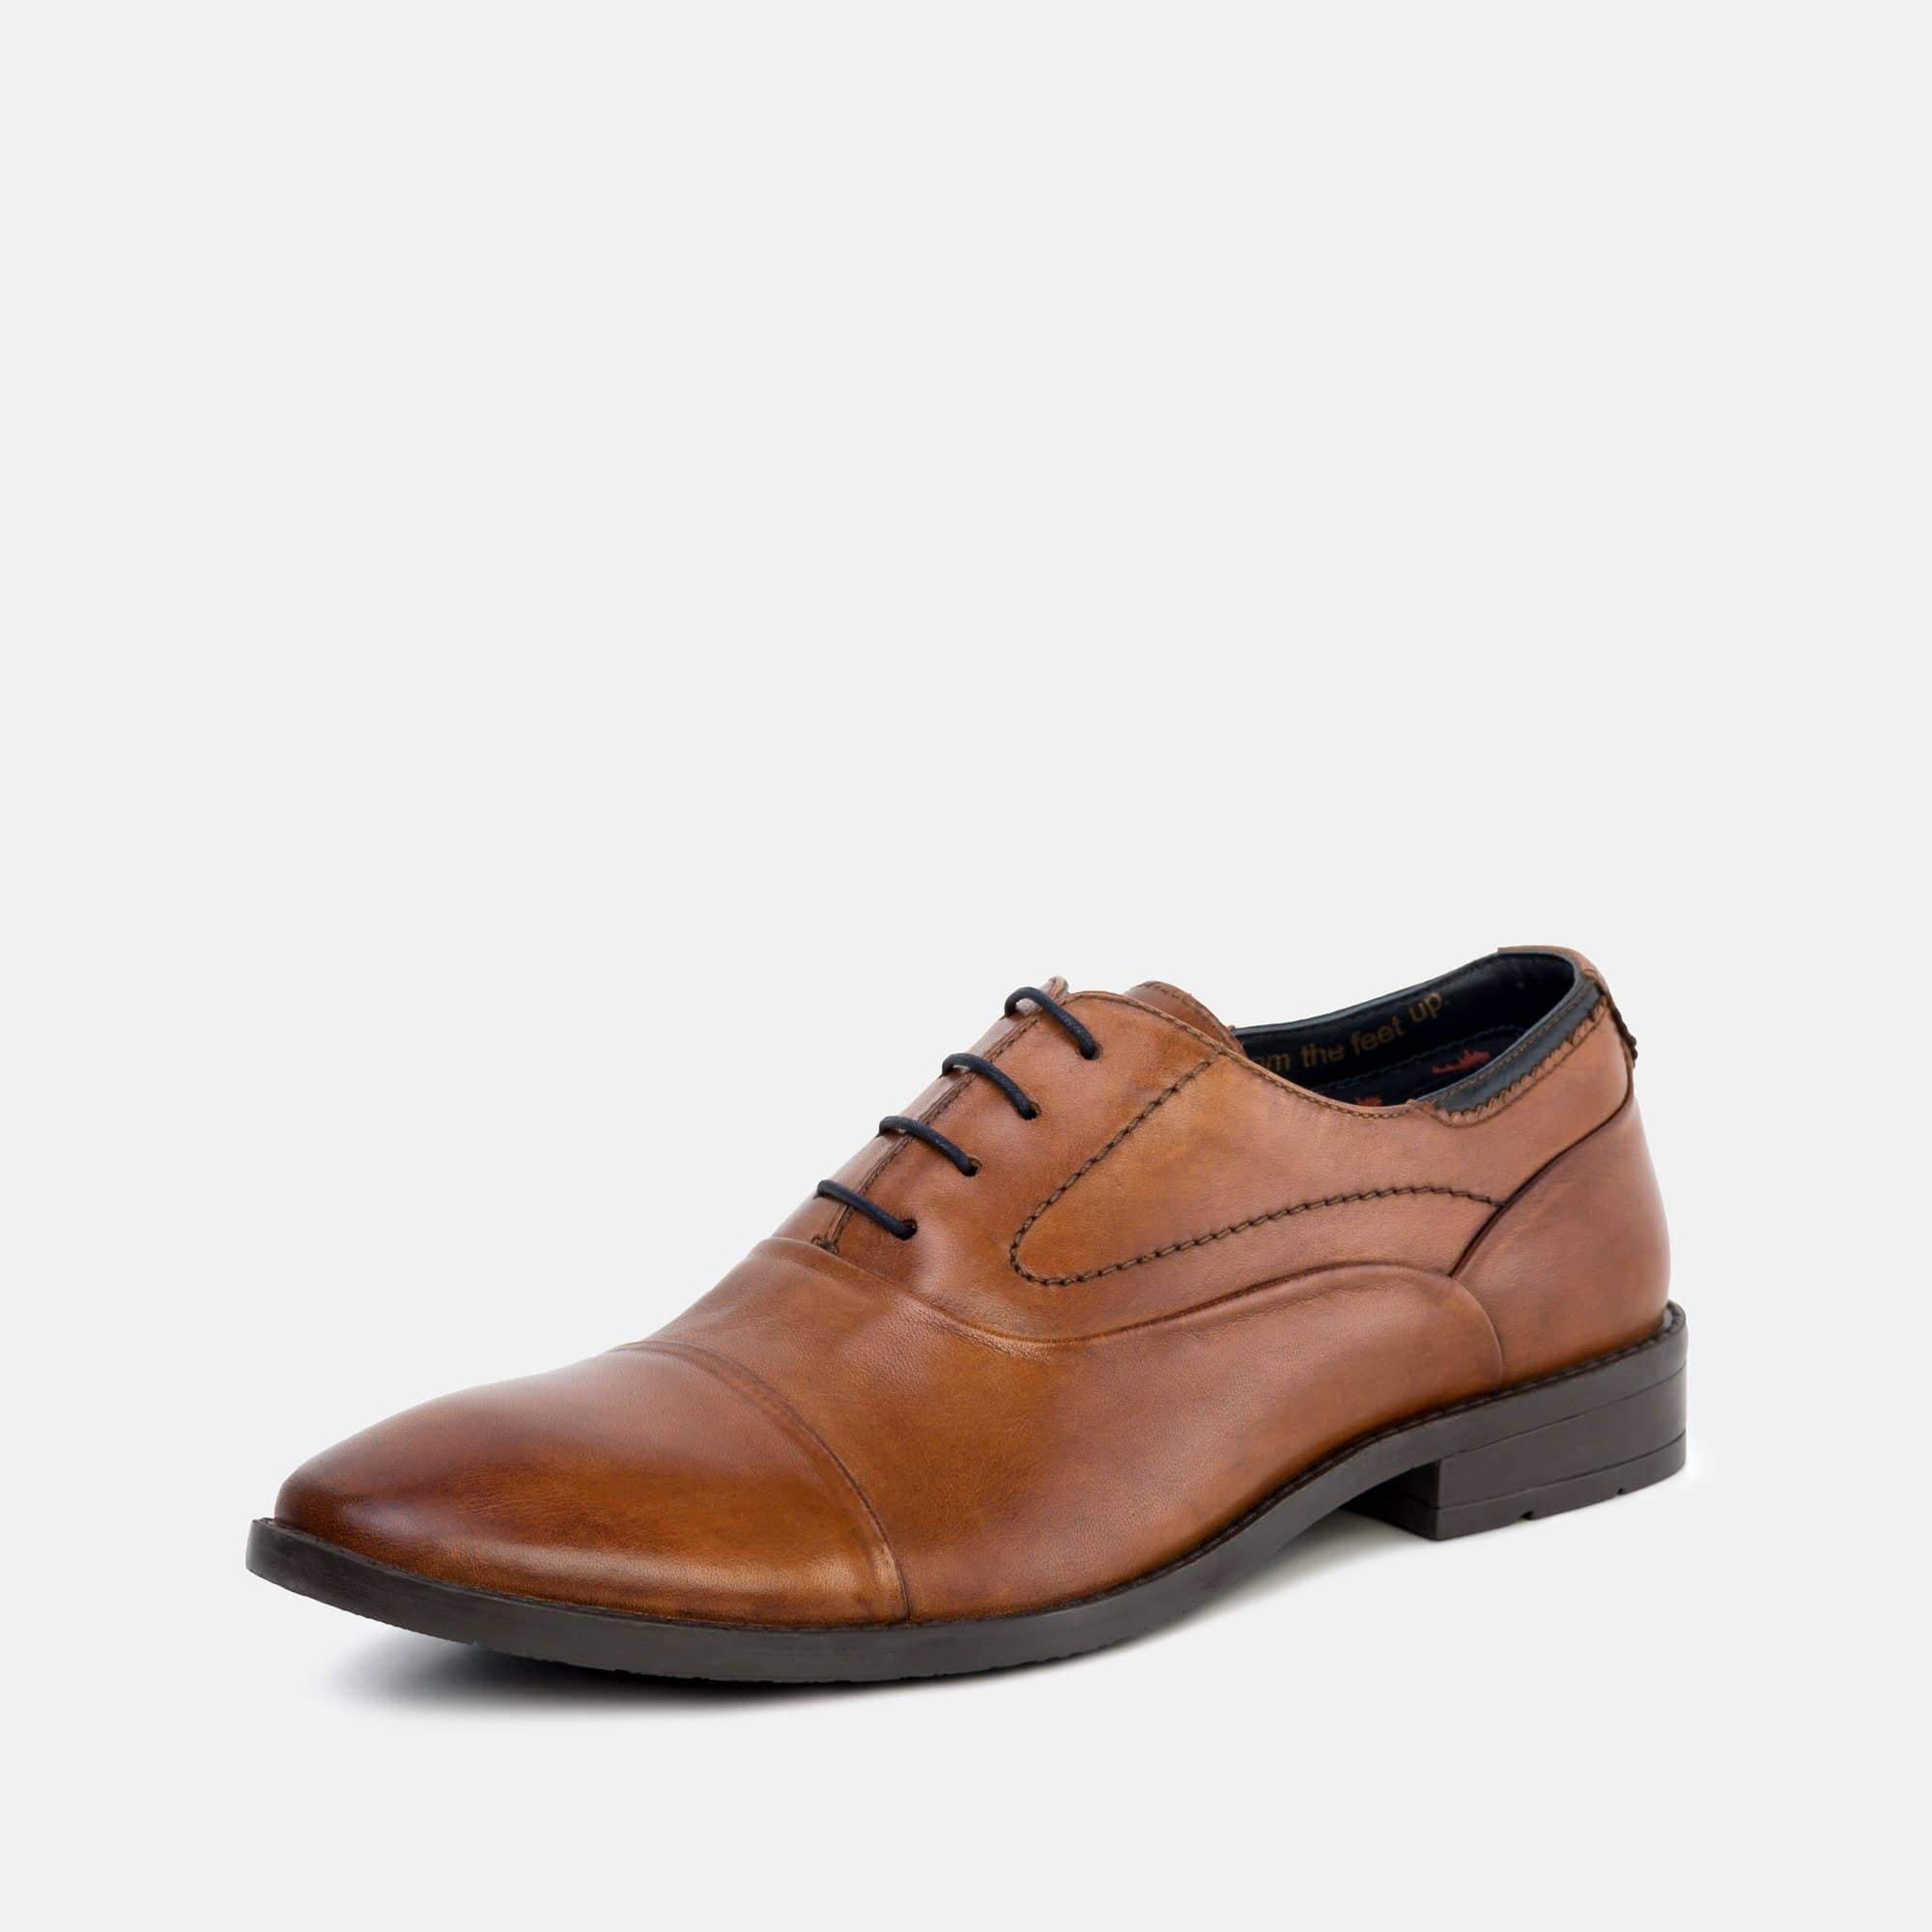 Goodwin Smith Footwear Irving Tan Classic Leather Oxford Shoe